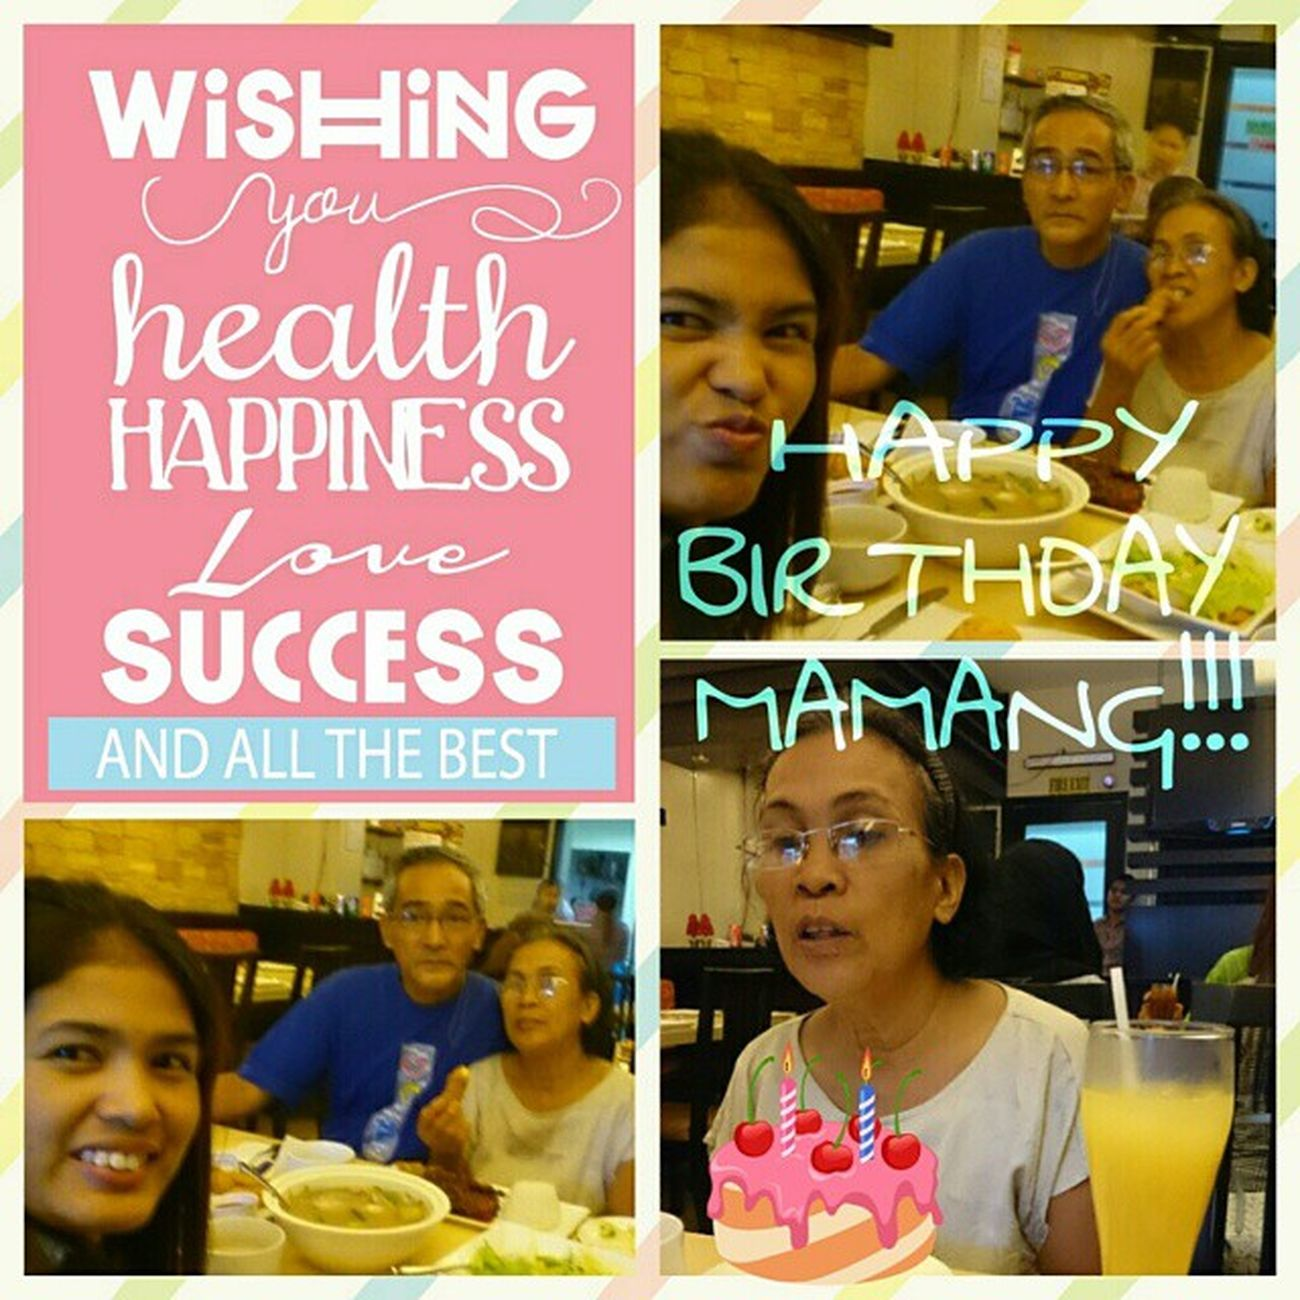 HAPPY BIRTHDAY MAMANG!!! A BIRTHDAY WISH TO THE GREAT MOM. WE LOVE YOU.- From Papang, I, and Jam. 63rd Birthdaytreat Fulltummies Gastronomía Bestmomever